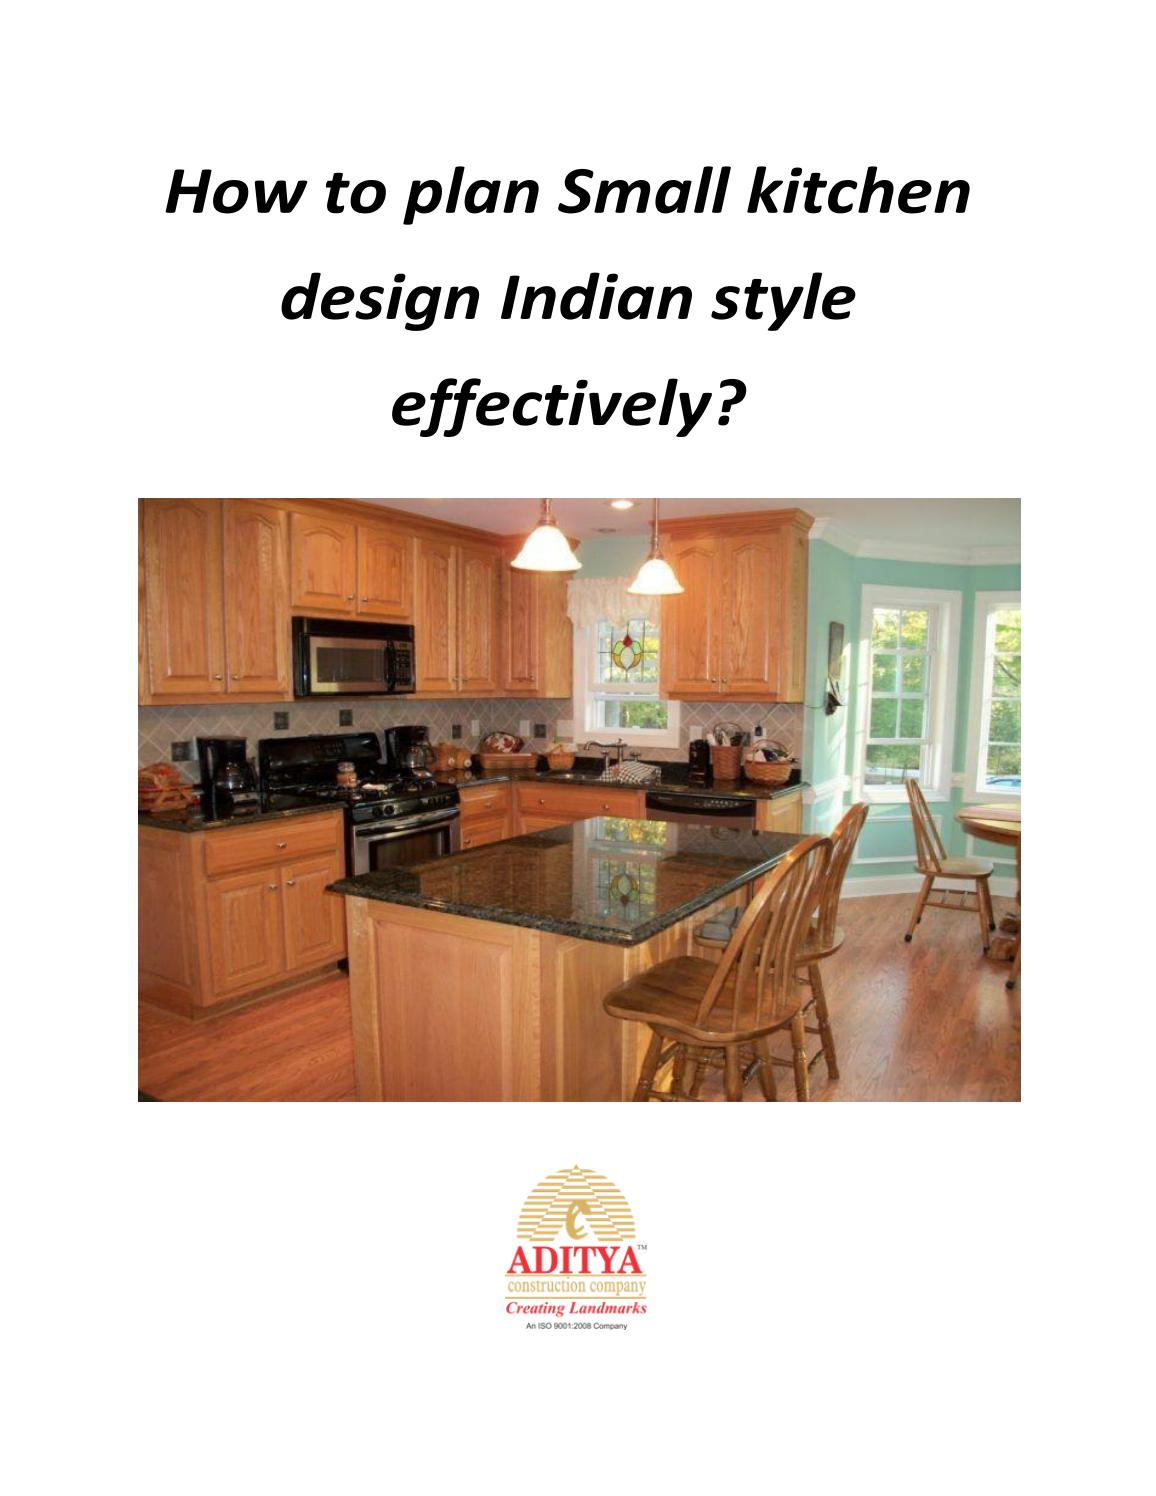 Simple Kitchen Design For Small House Kitchen By Aditya Construction Company By Adityacc Issuu